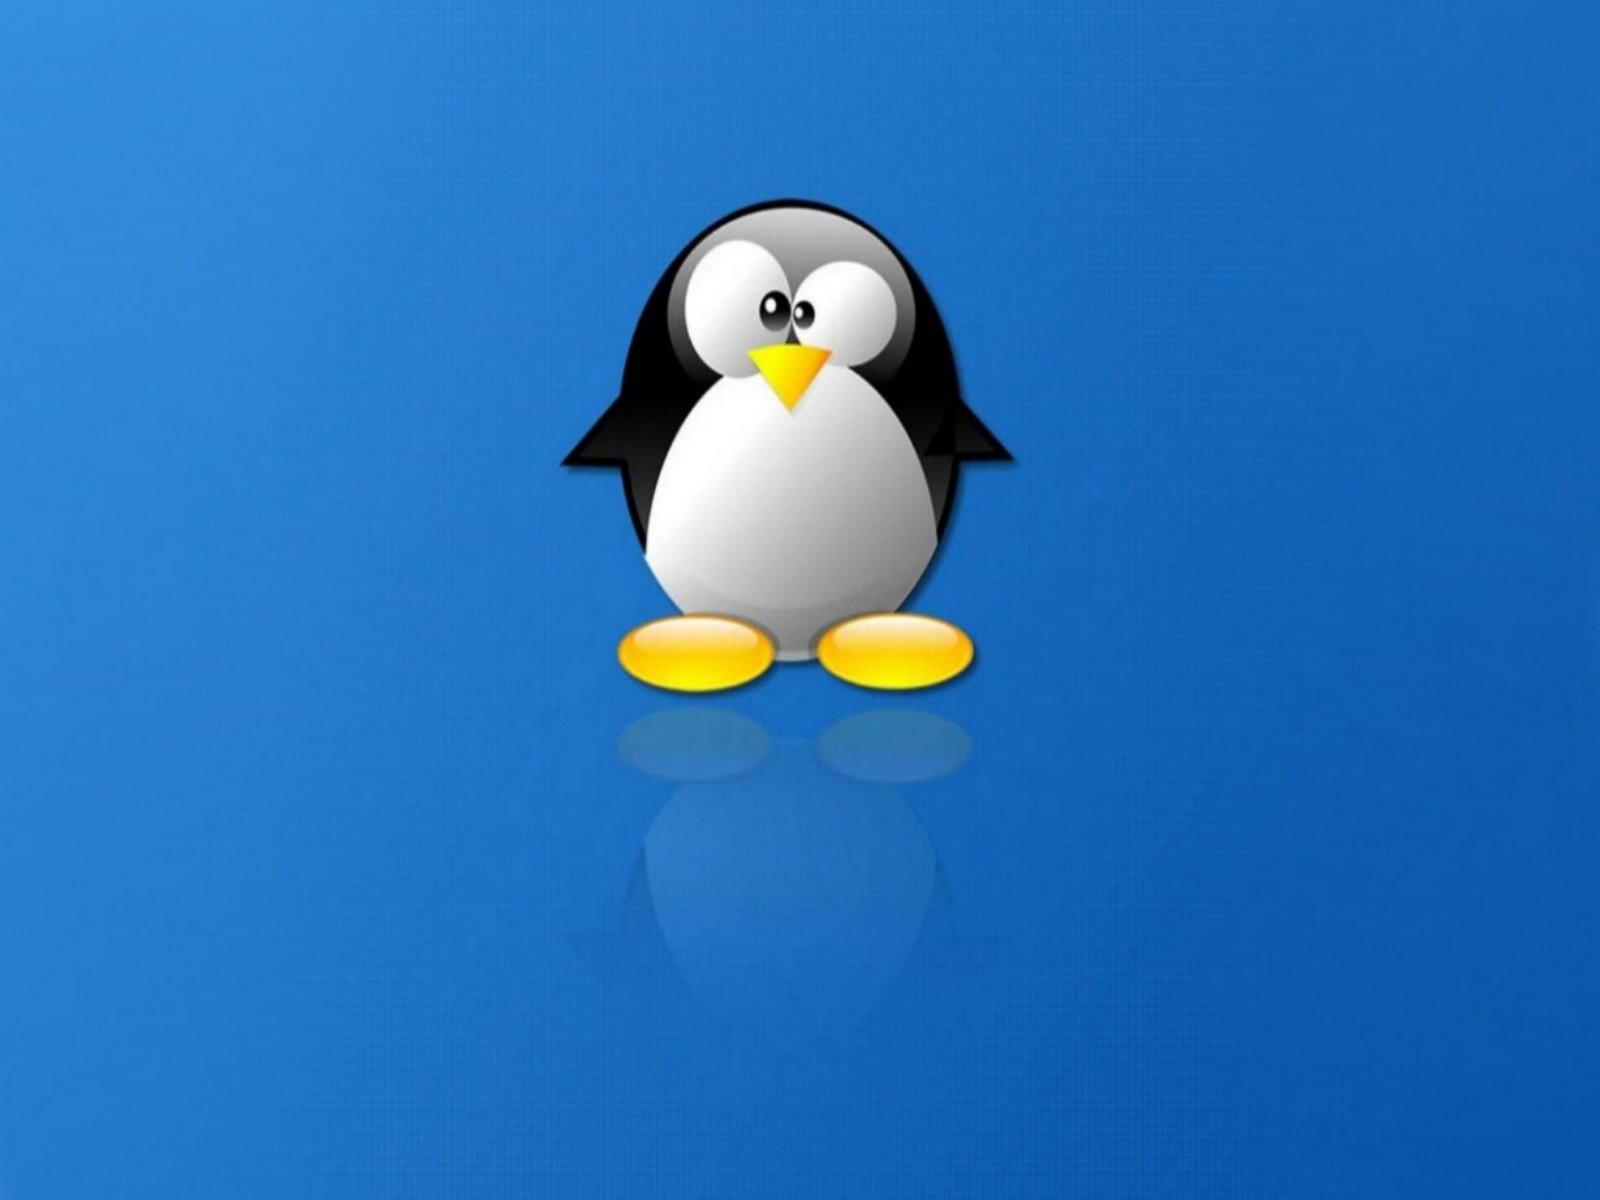 linux widescreen wallpapers wallpaper - photo #49